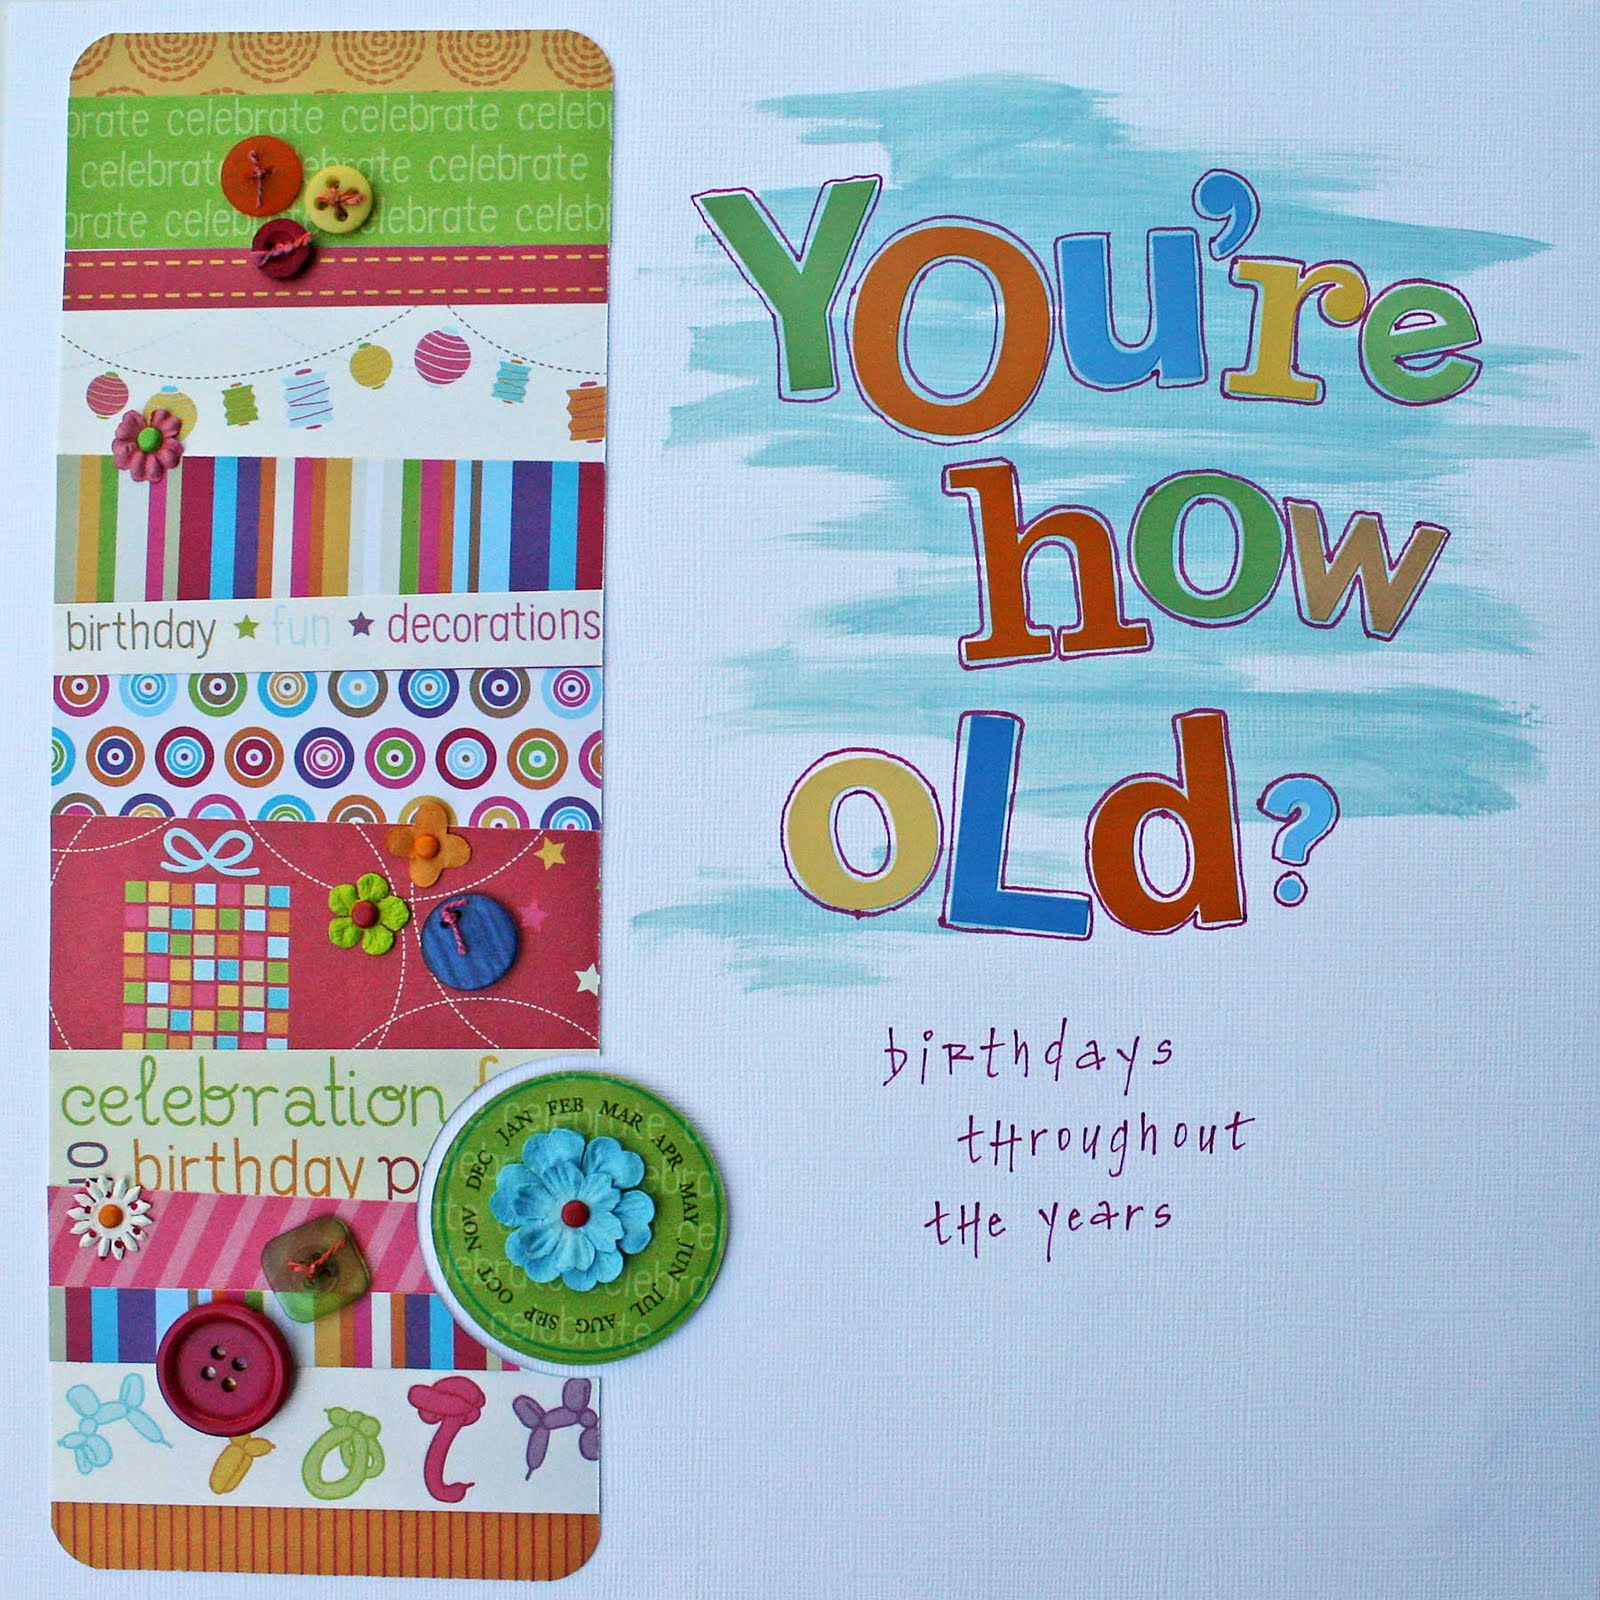 carrot top x birthday album i made this title page for the album a couple of years ago love the creative imaginations papers and accents and painting on every layout was quite the